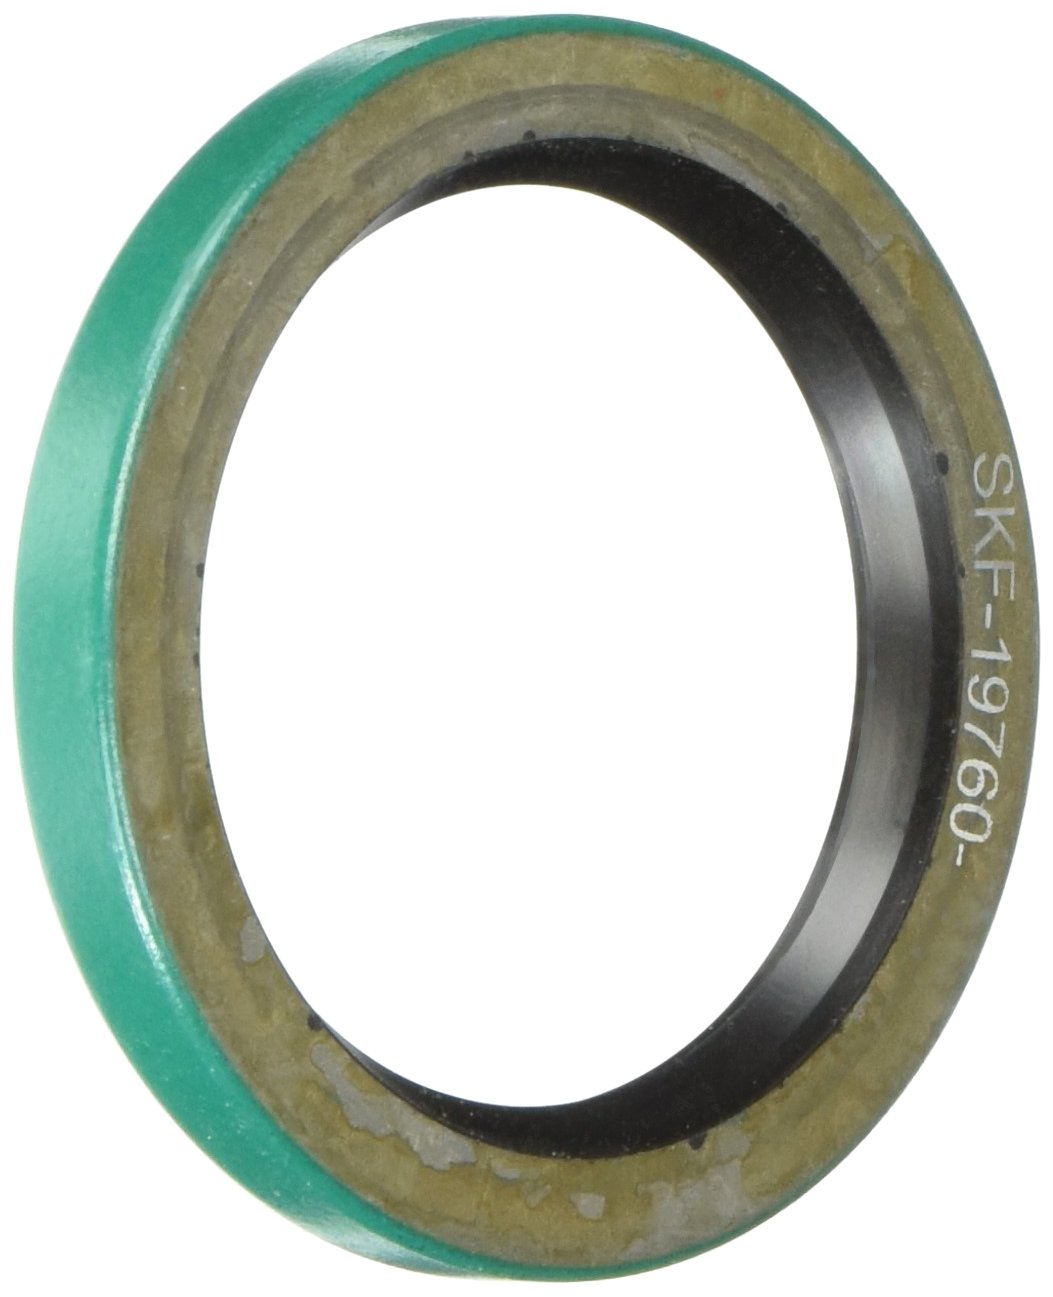 SKF 19760 Transfer Case Mounting Adapter Seal